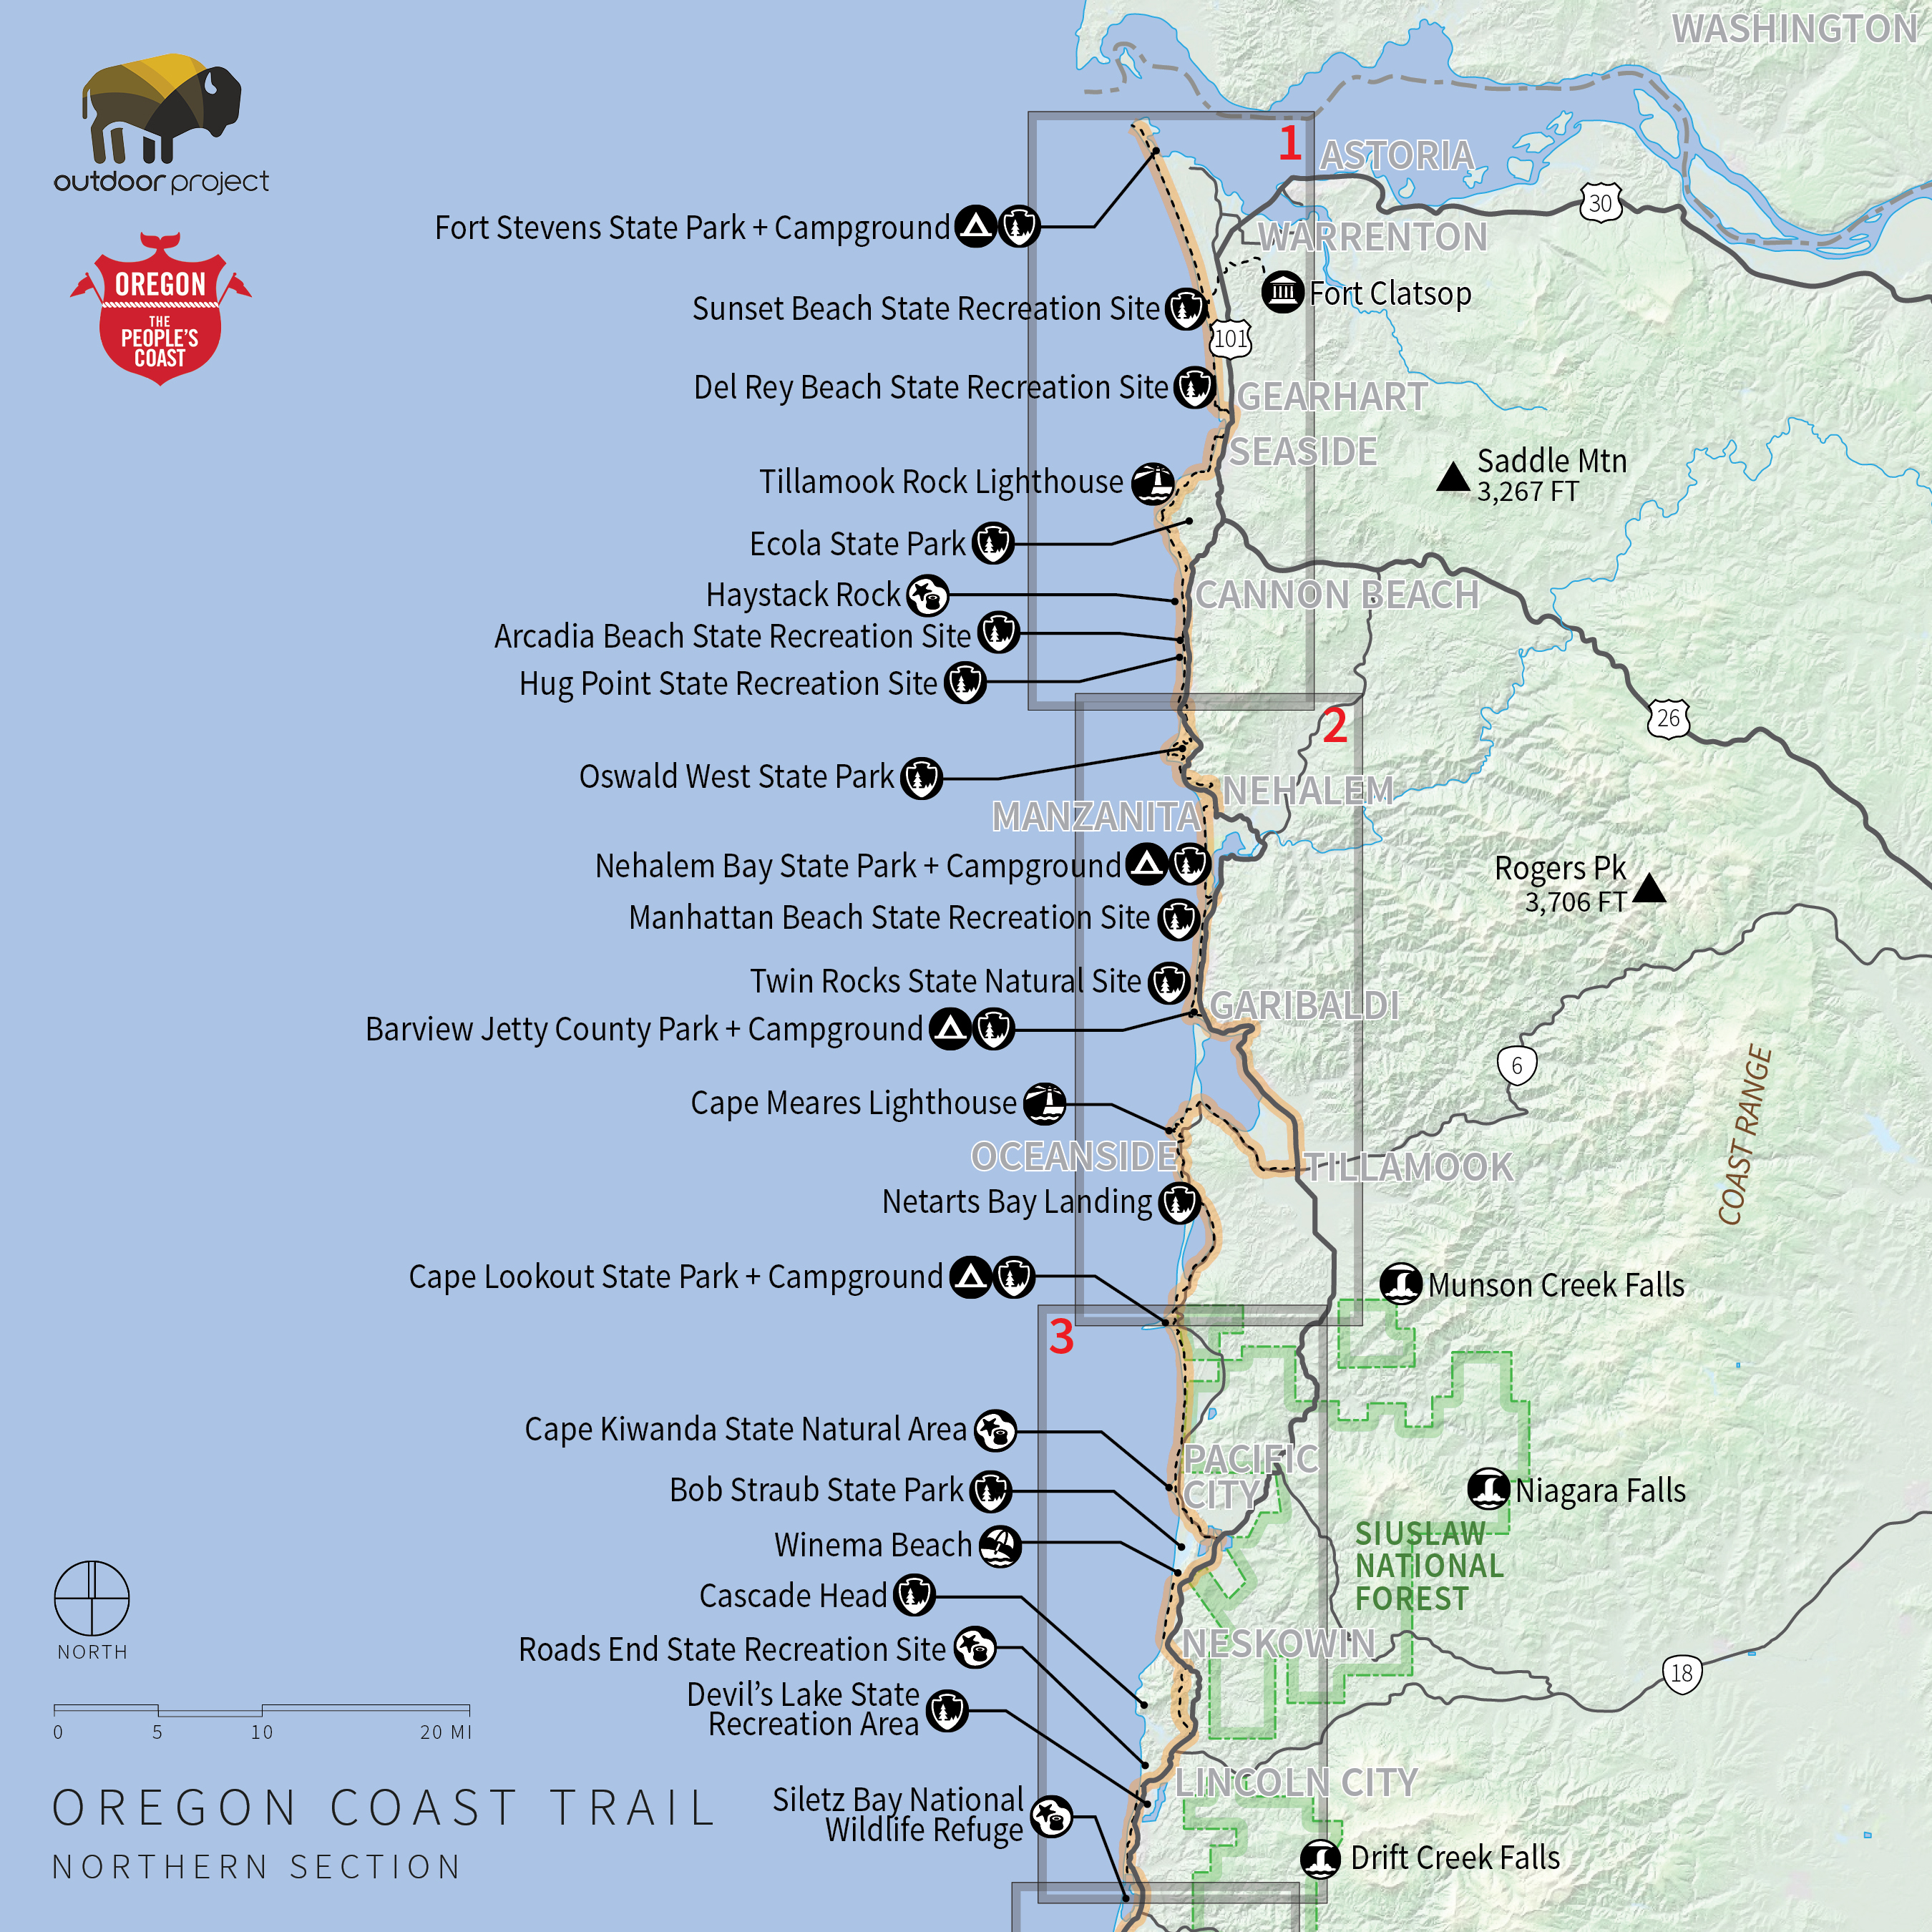 Oregon Coast Trail Northern Map Reference Camping California Coast - Camping Central California Coast Map